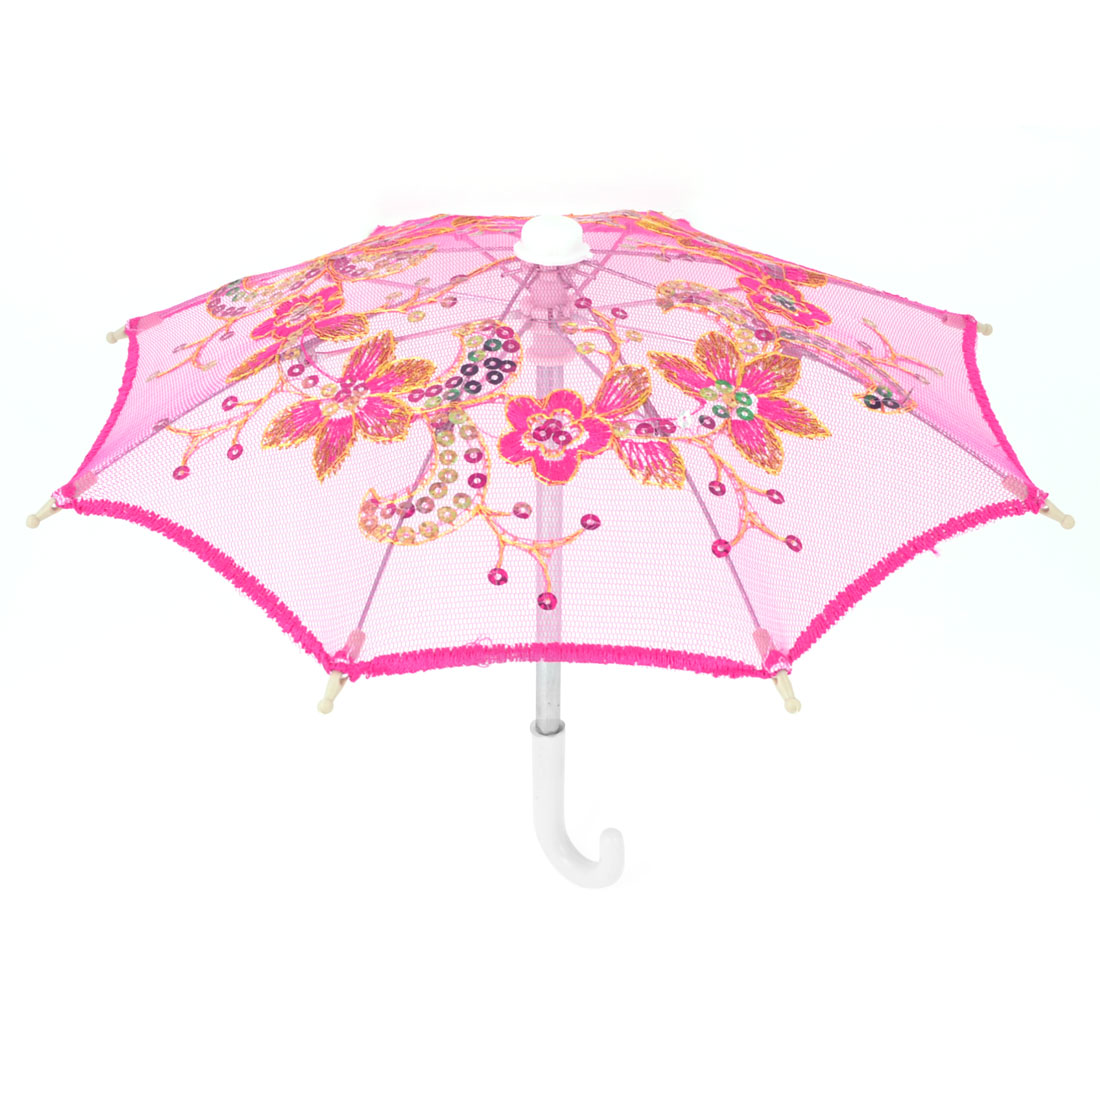 Dance Wedding Embroidery Floral Pattern Sequins Accent Mini Parasol Umbrella Craft Ornament Fuchsia